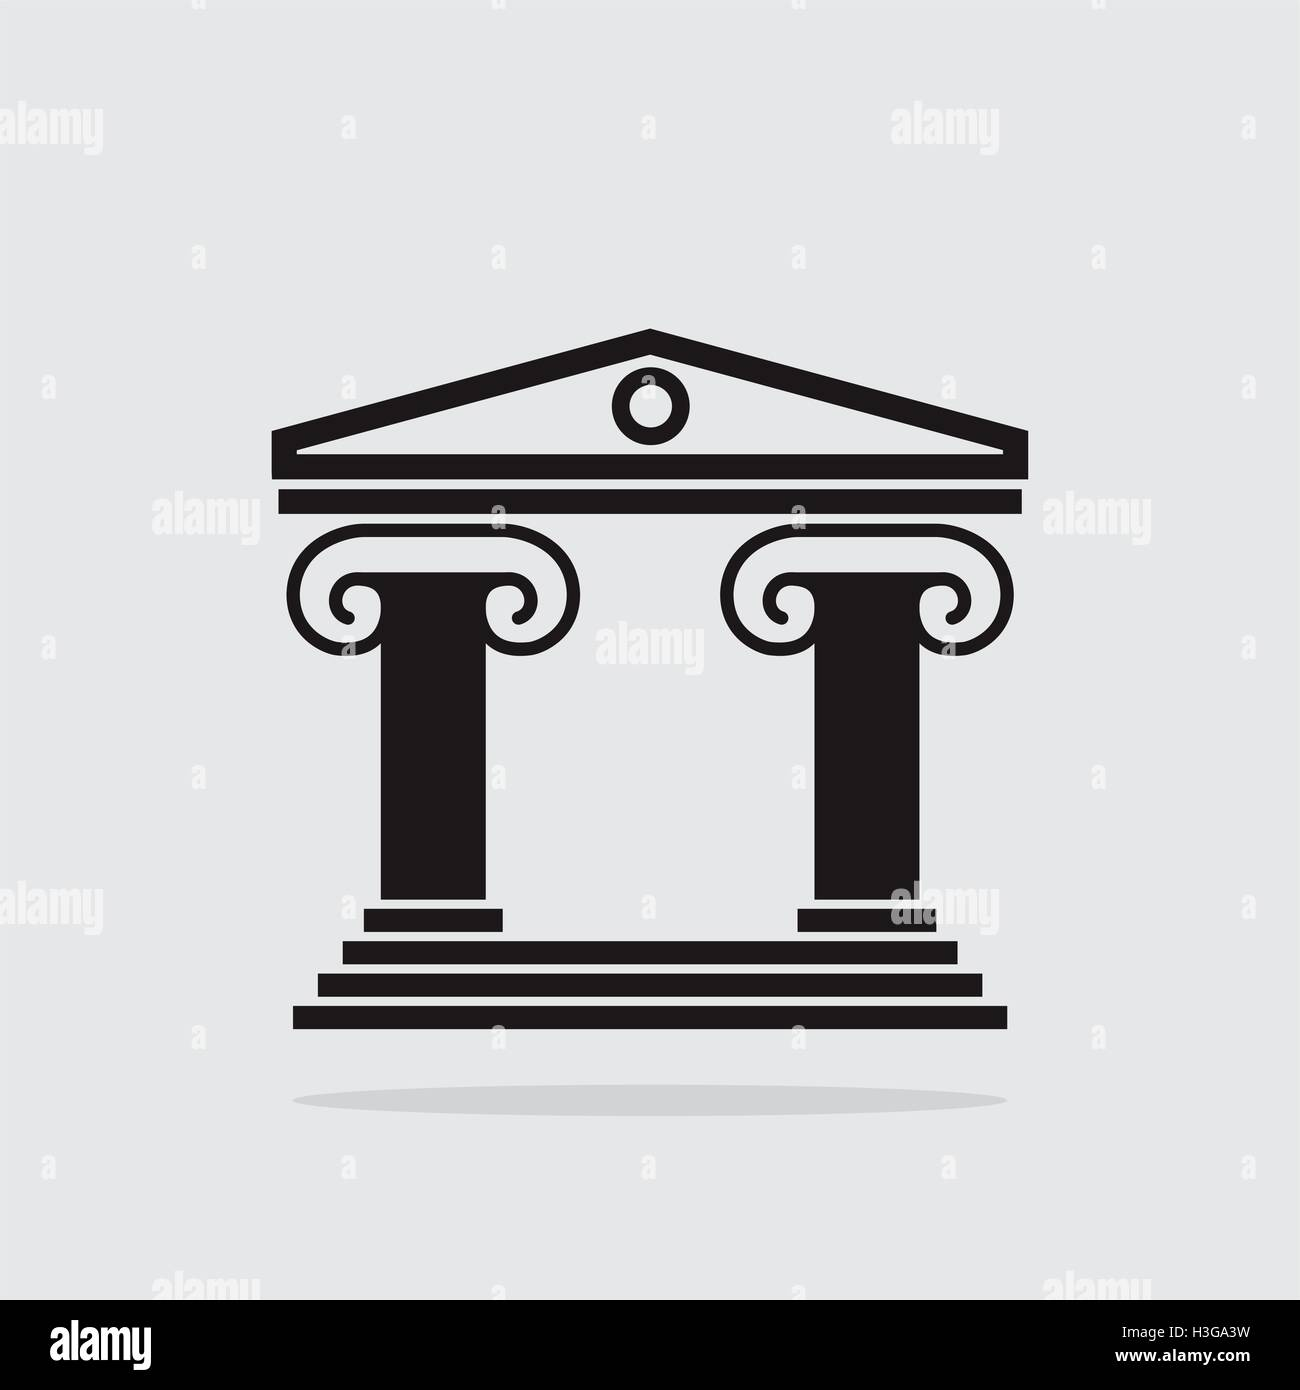 Vector Black And White Icon Of Ancient Greek Architecture Building With Columns